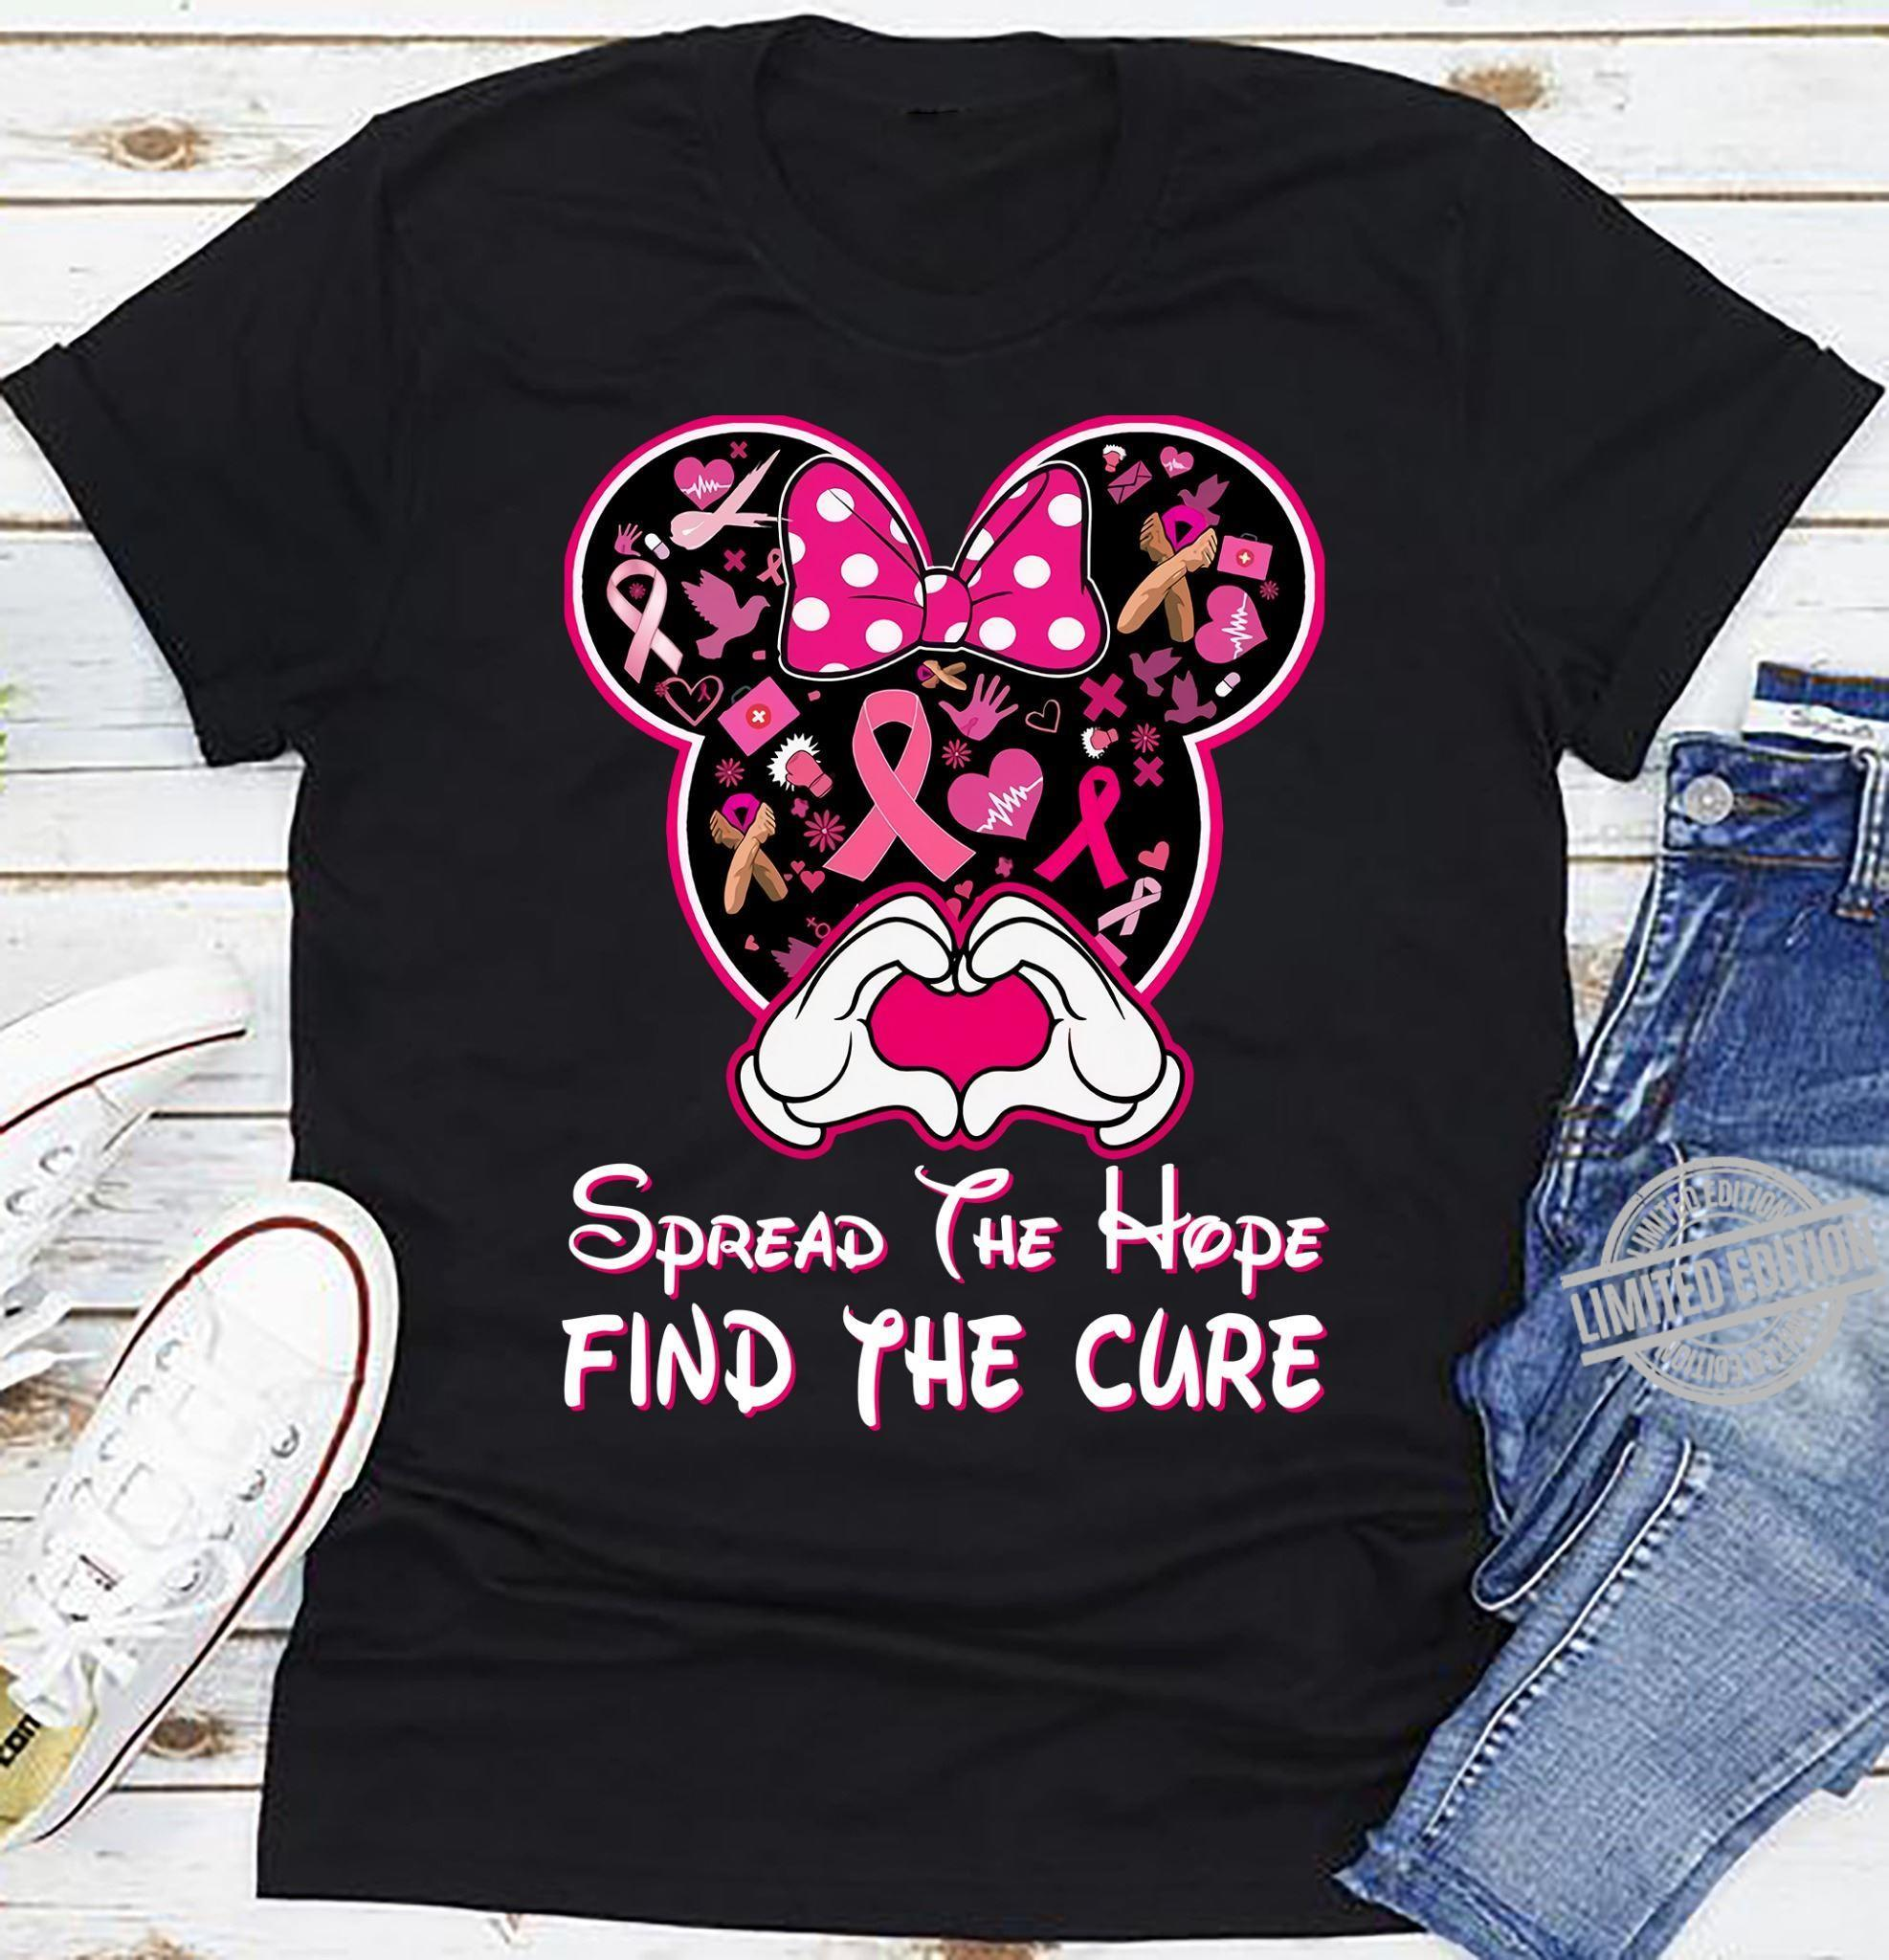 Spread The Hope Find The Cure Shirt